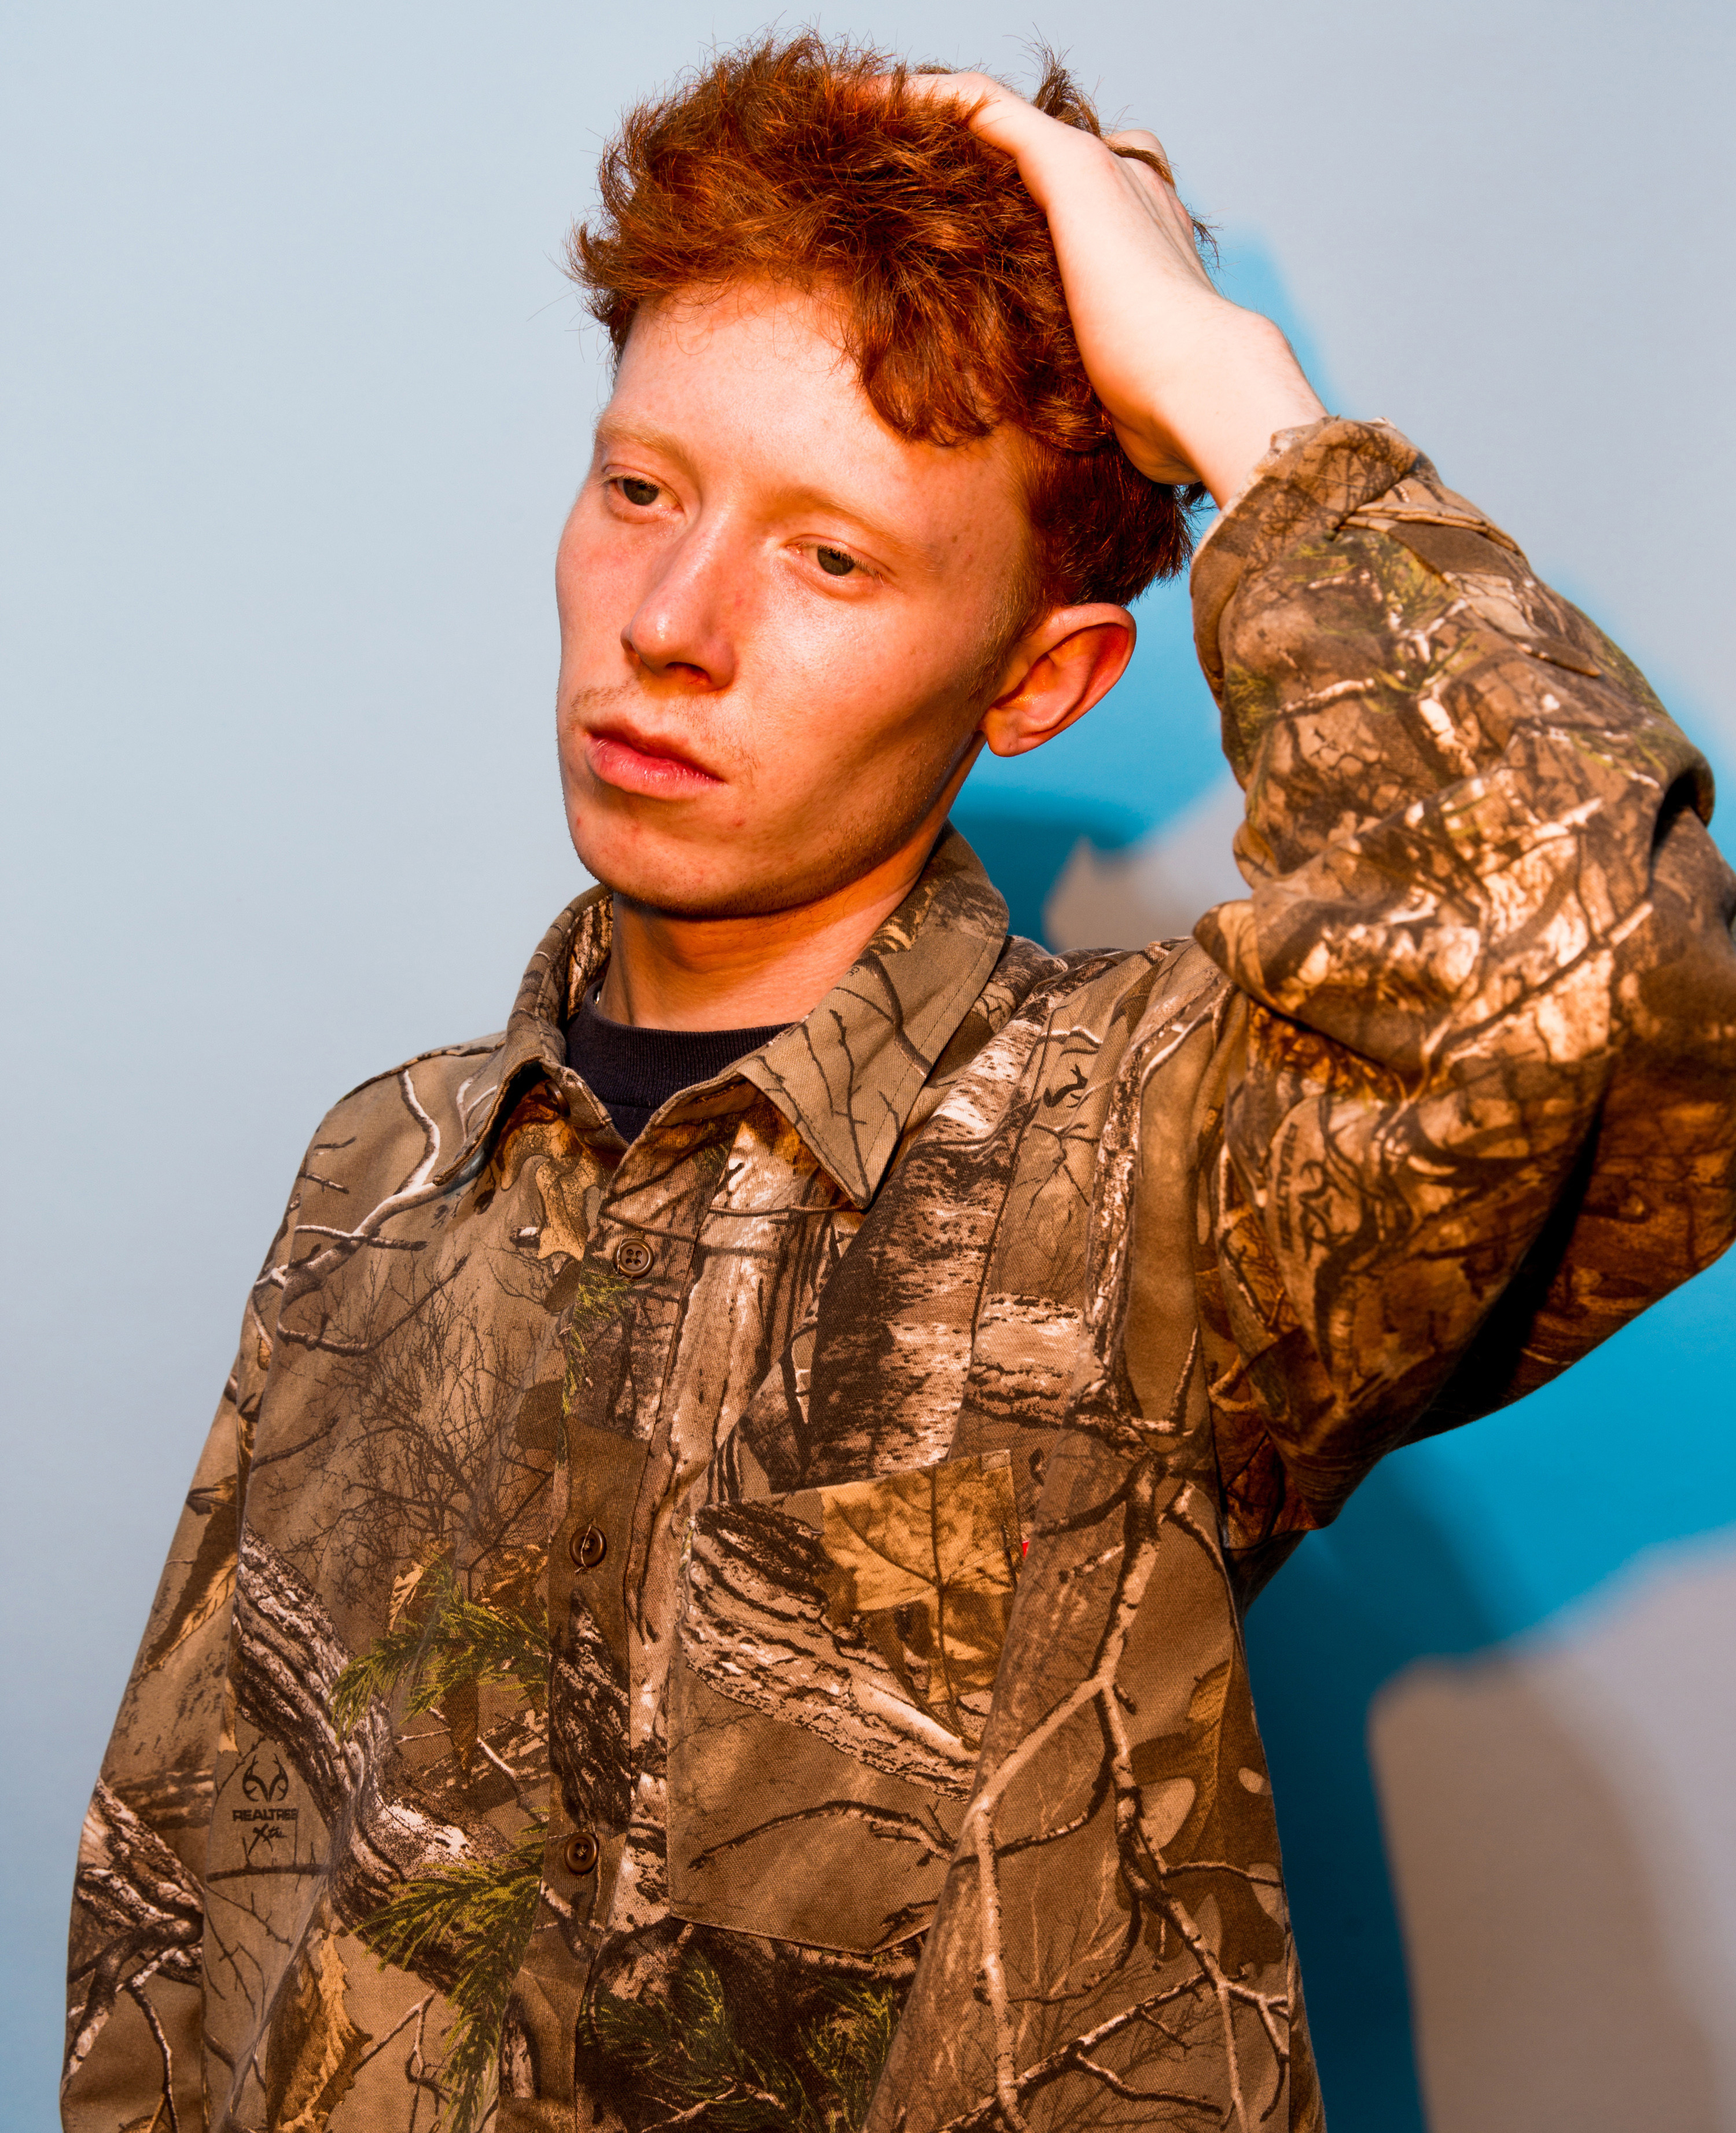 The kids outside Chicago's Metro have been waiting for hours to see Archy  Marshall, the 23-year-old London singer known as King Krule.